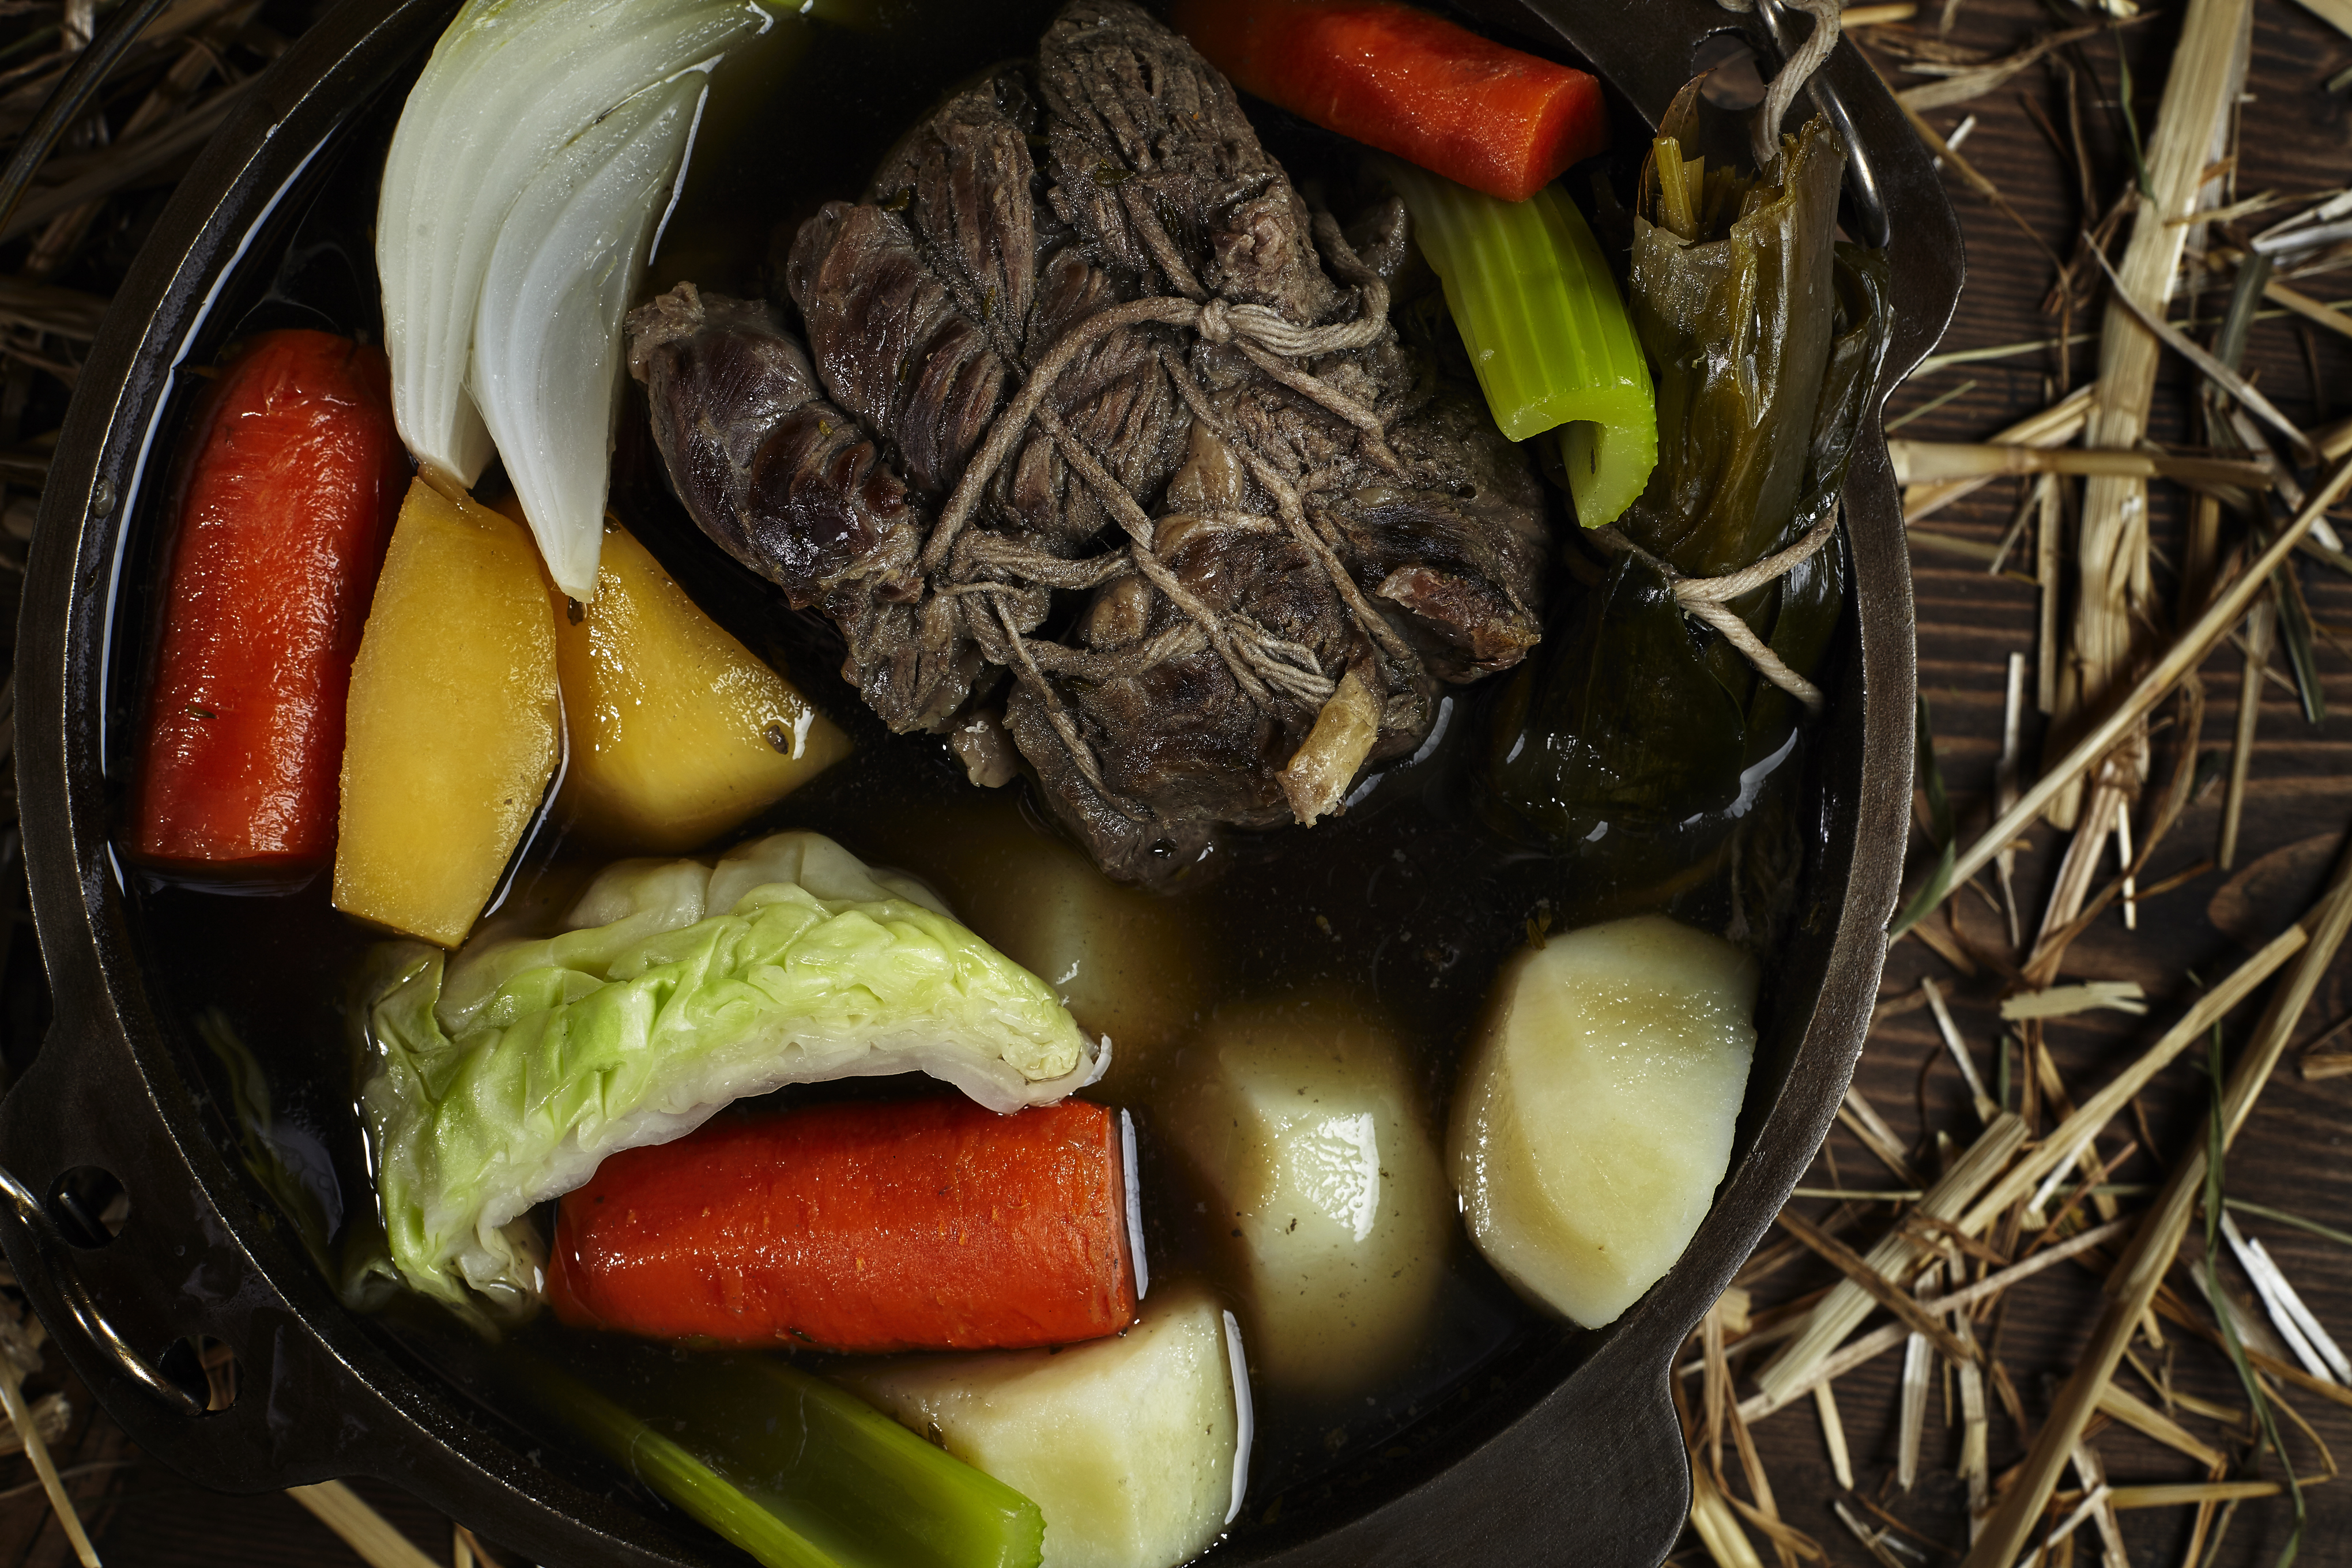 Chef owner Thierry Rautereau prepares one of his favorite family recipes, Pot Au Feu, for Edible Seattle